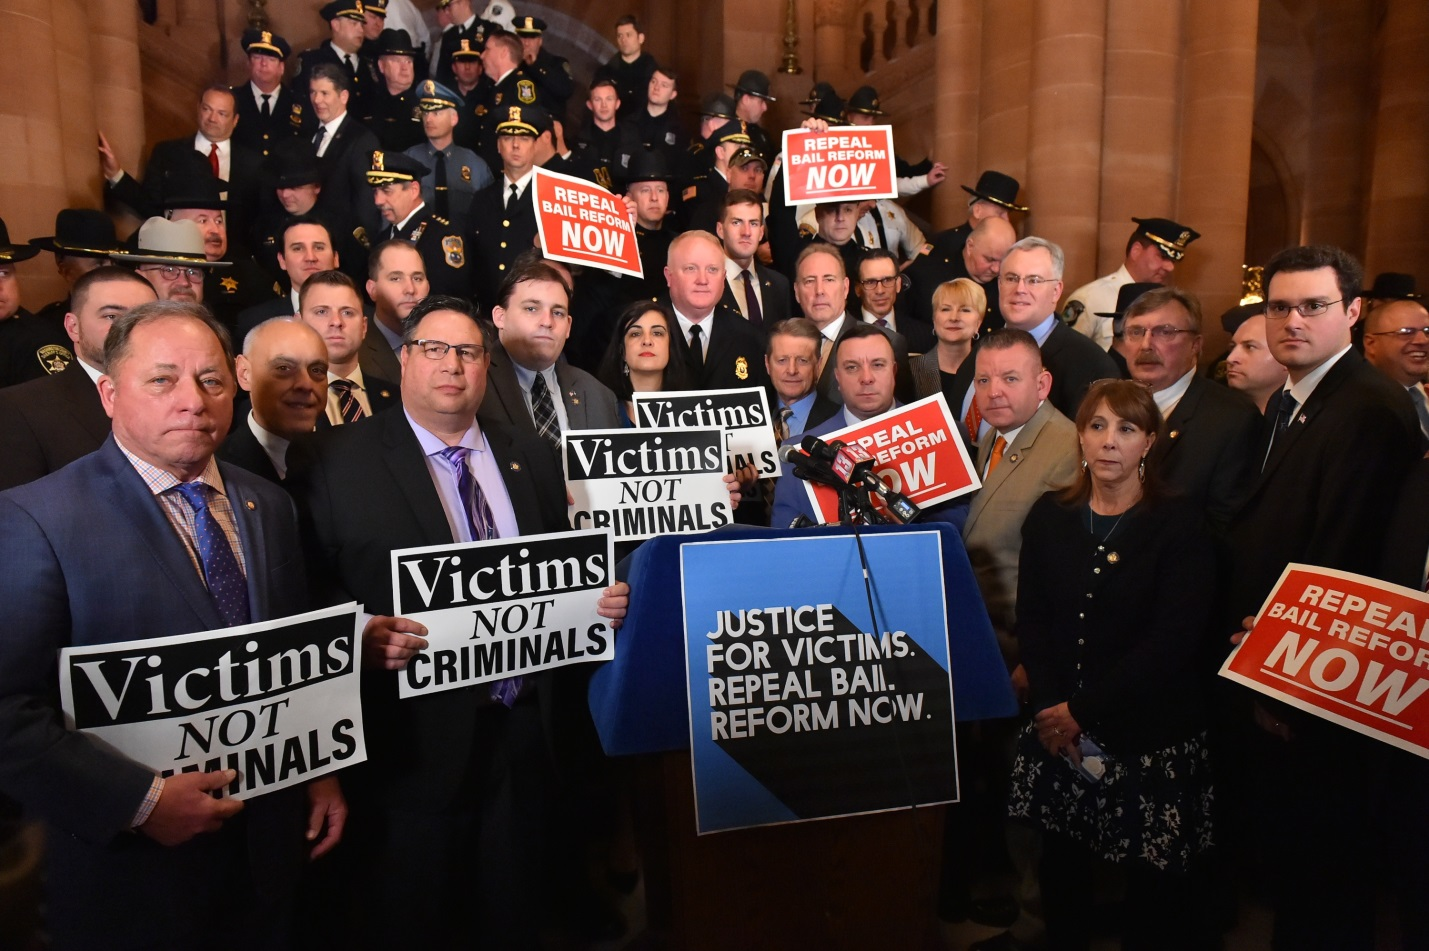 Assemblyman Brian Manktelow (R,C,I,Ref-Lyons) attended a rally to repeal bail reform at the State Capitol on Tuesday, February 4.